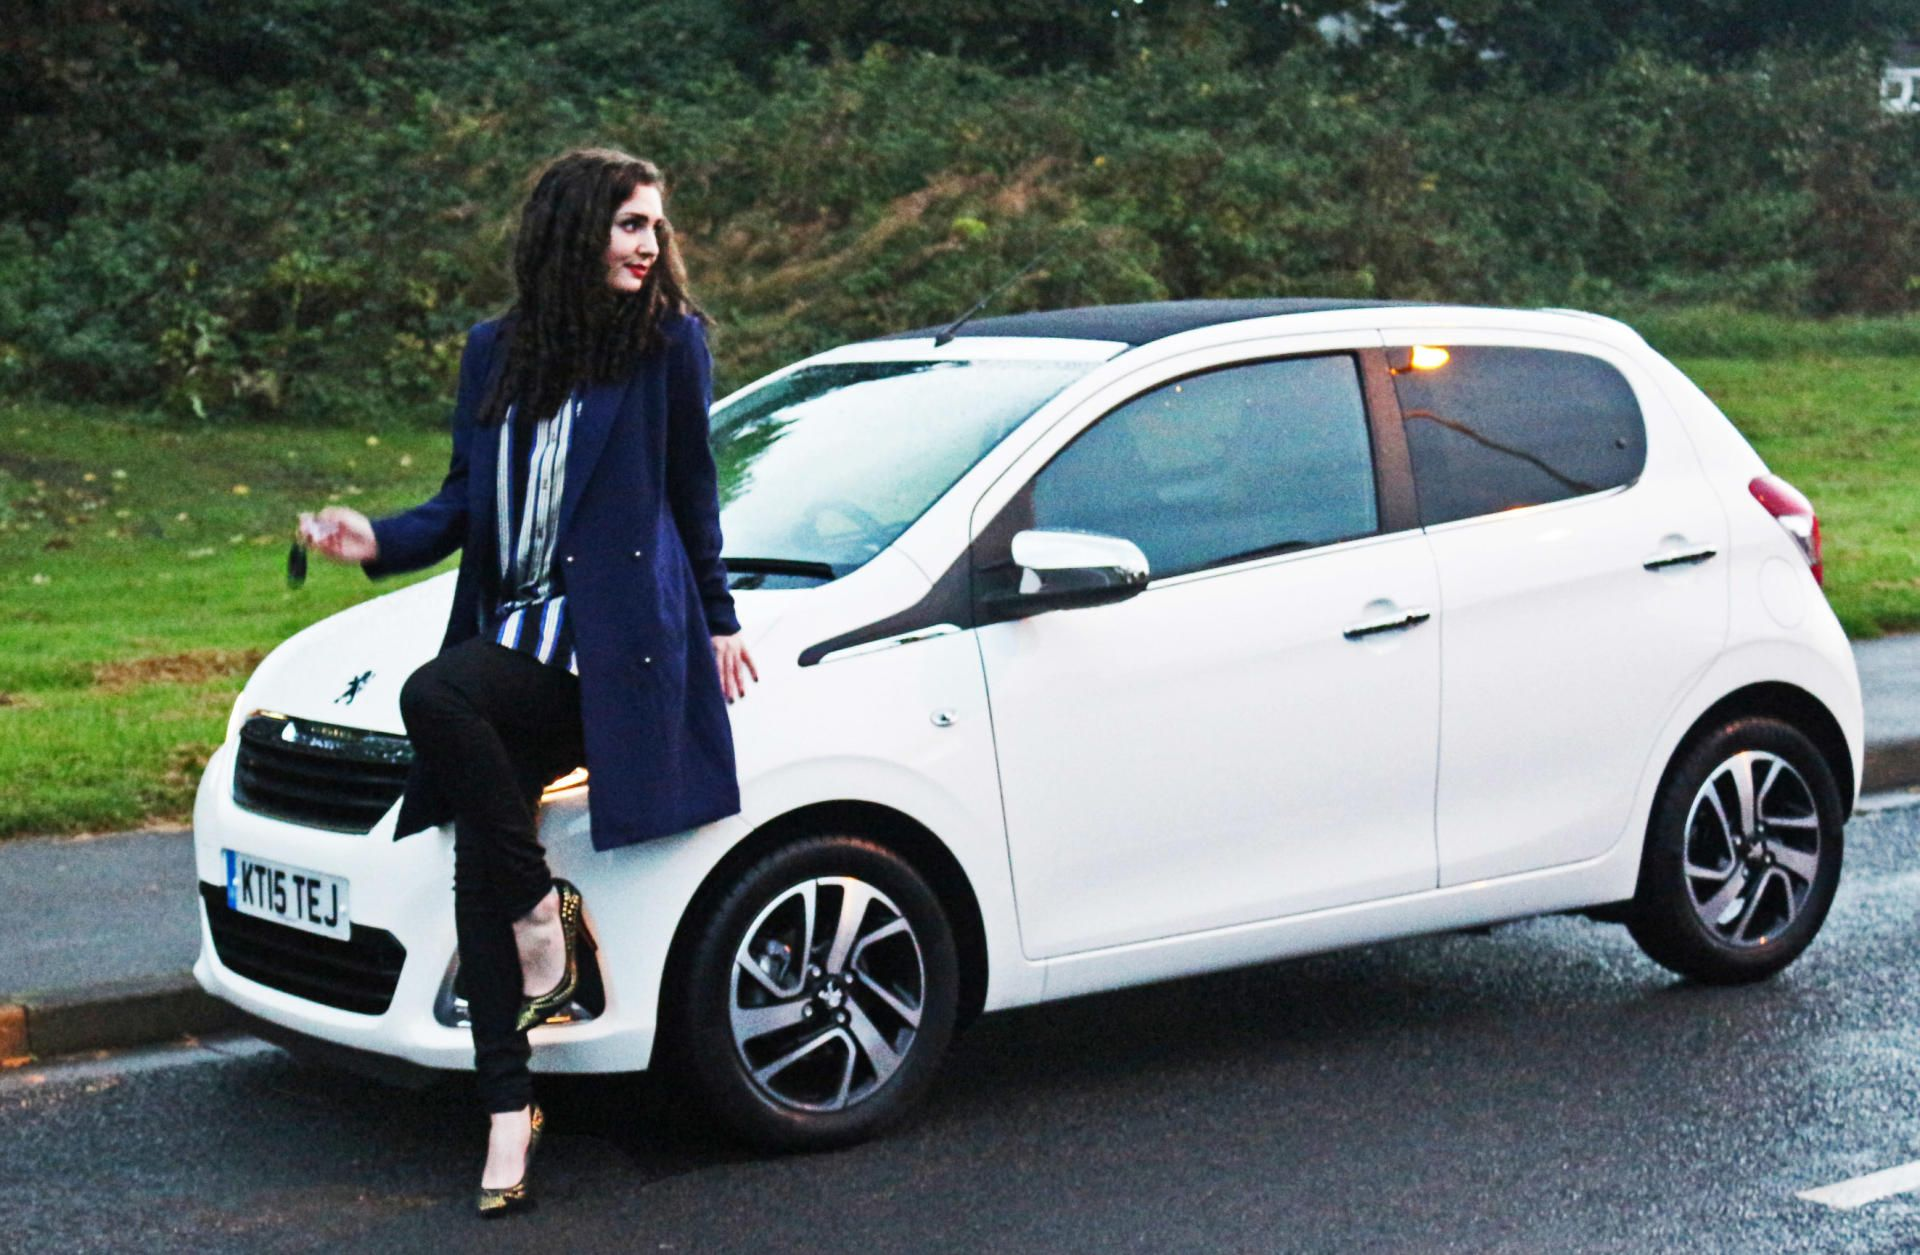 Lily Kitten 17th November 2015a Week With A Peugeot 108a Week